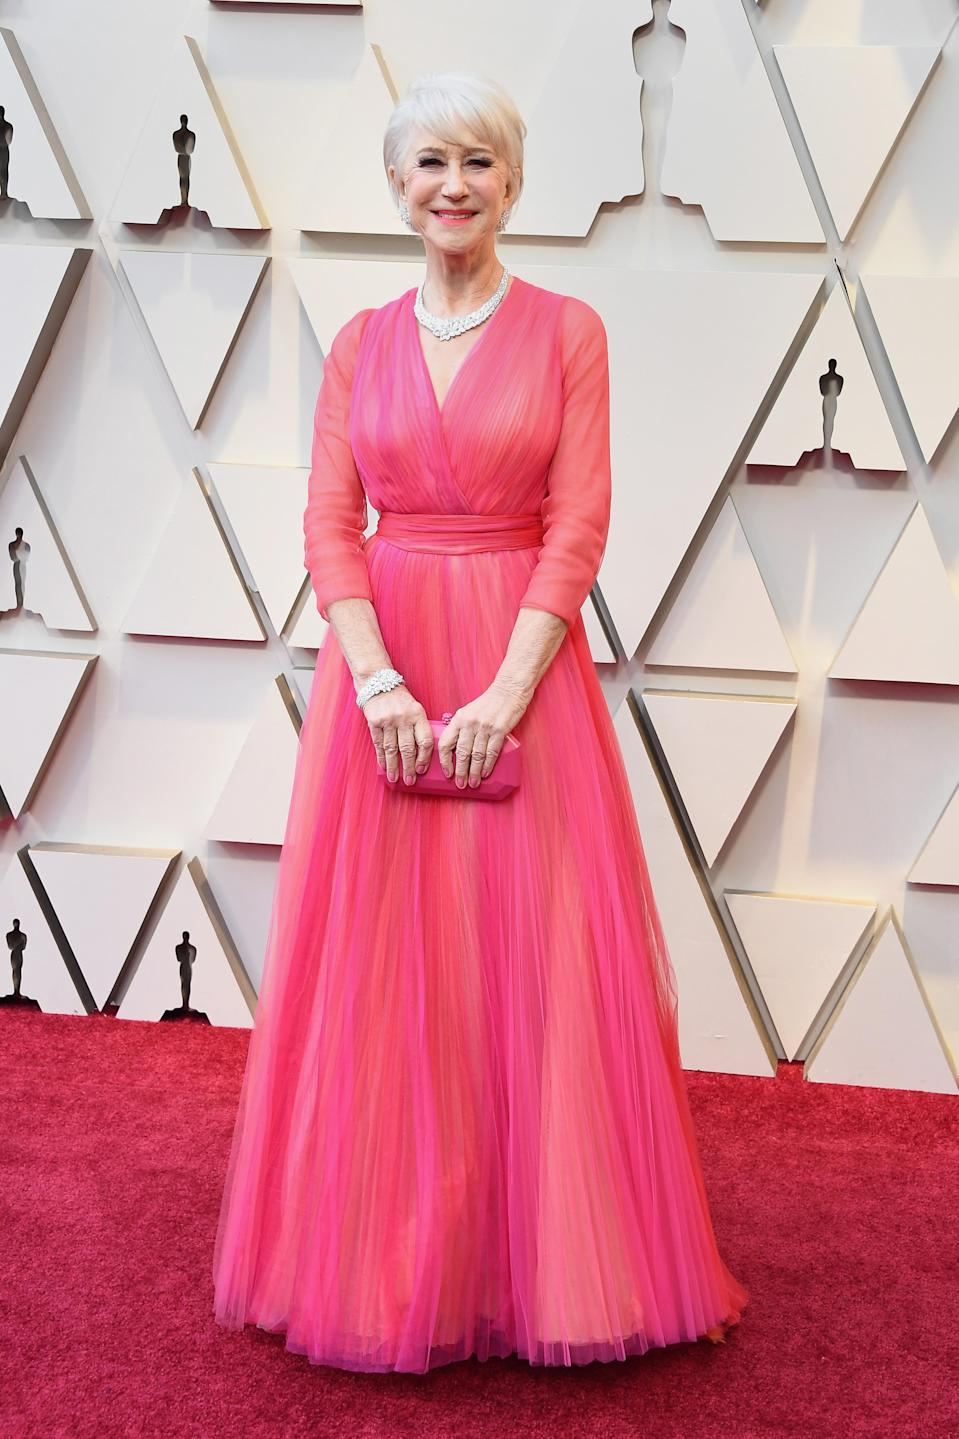 <p>The Oscar winner looked elegant in a coral gown by Schiaparelli as she arrived to cheering fans at the 91st Academy Awards. (Image via Getty Images) </p>